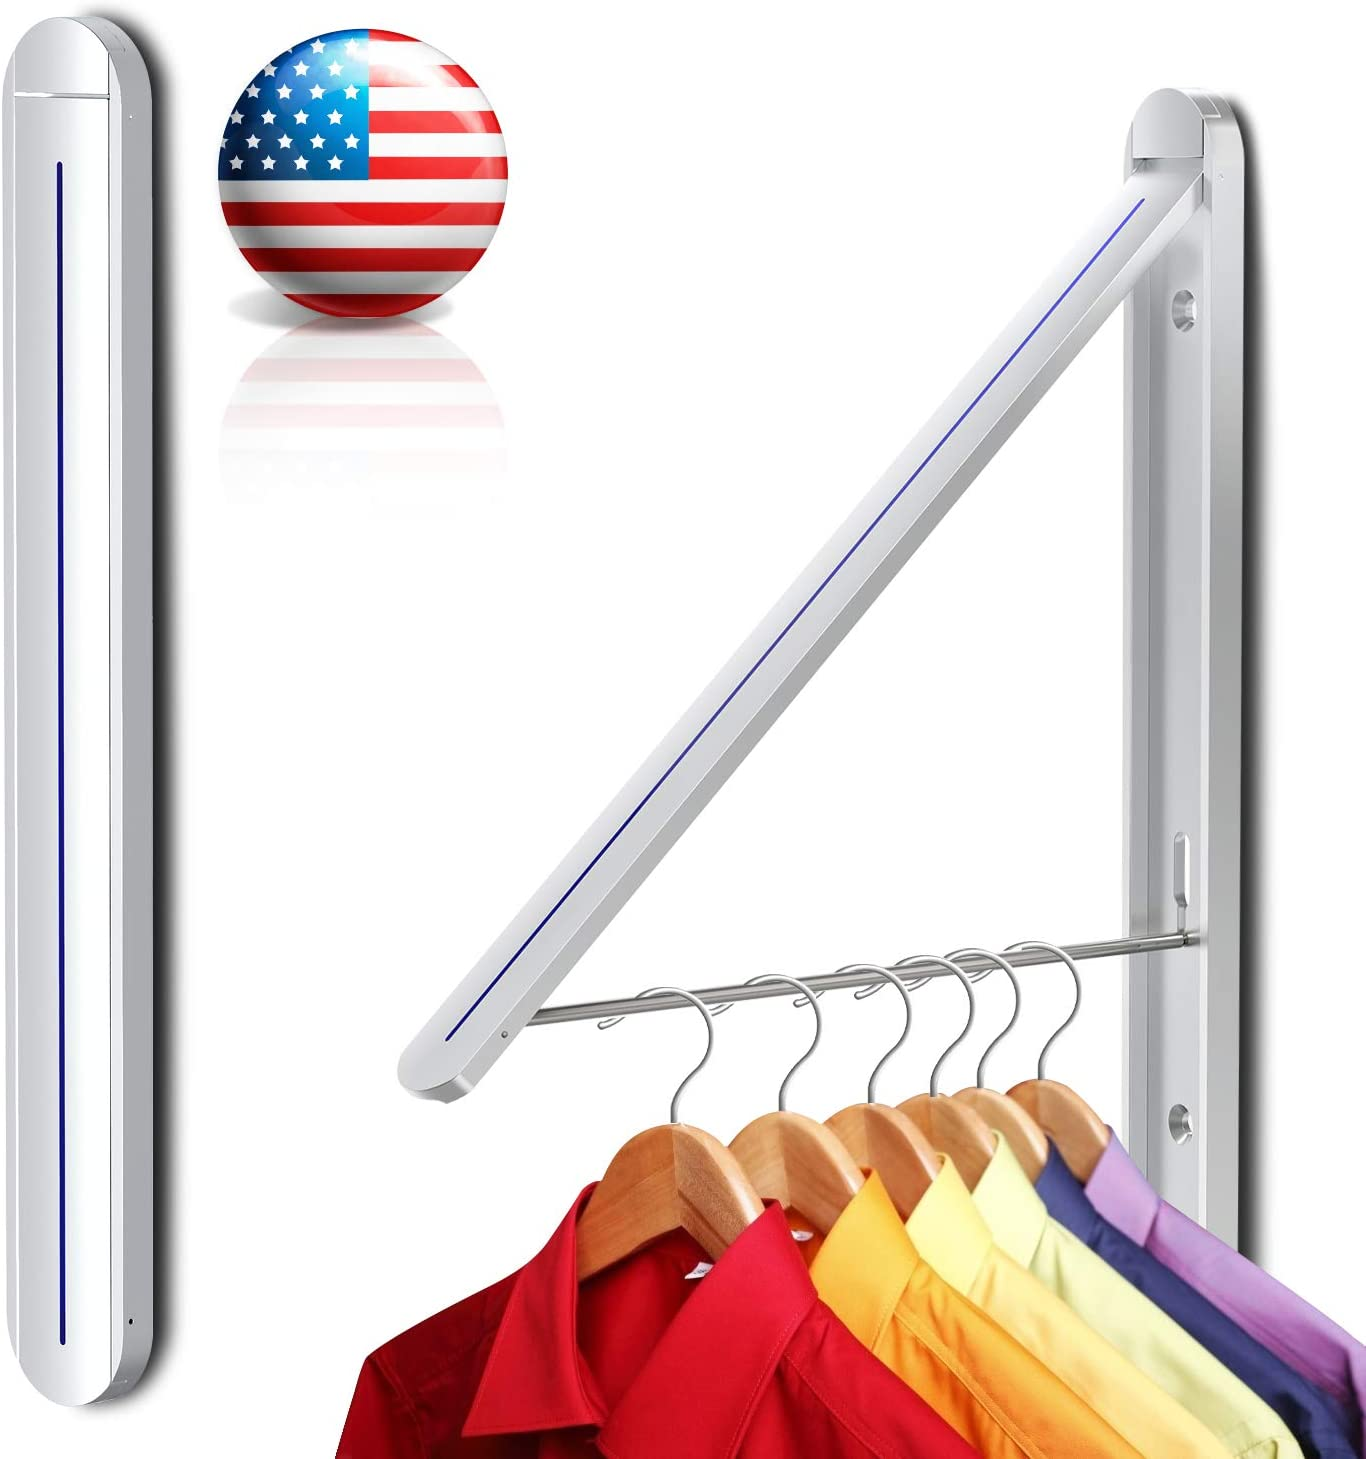 Aluminum Easy Installation Retractable Clothes Rack Wall Mounted Folding Clothes Hanger Drying Rack for Laundry Room Closet Storage Organization Dry or Freshen Clothes Outside (Silver)